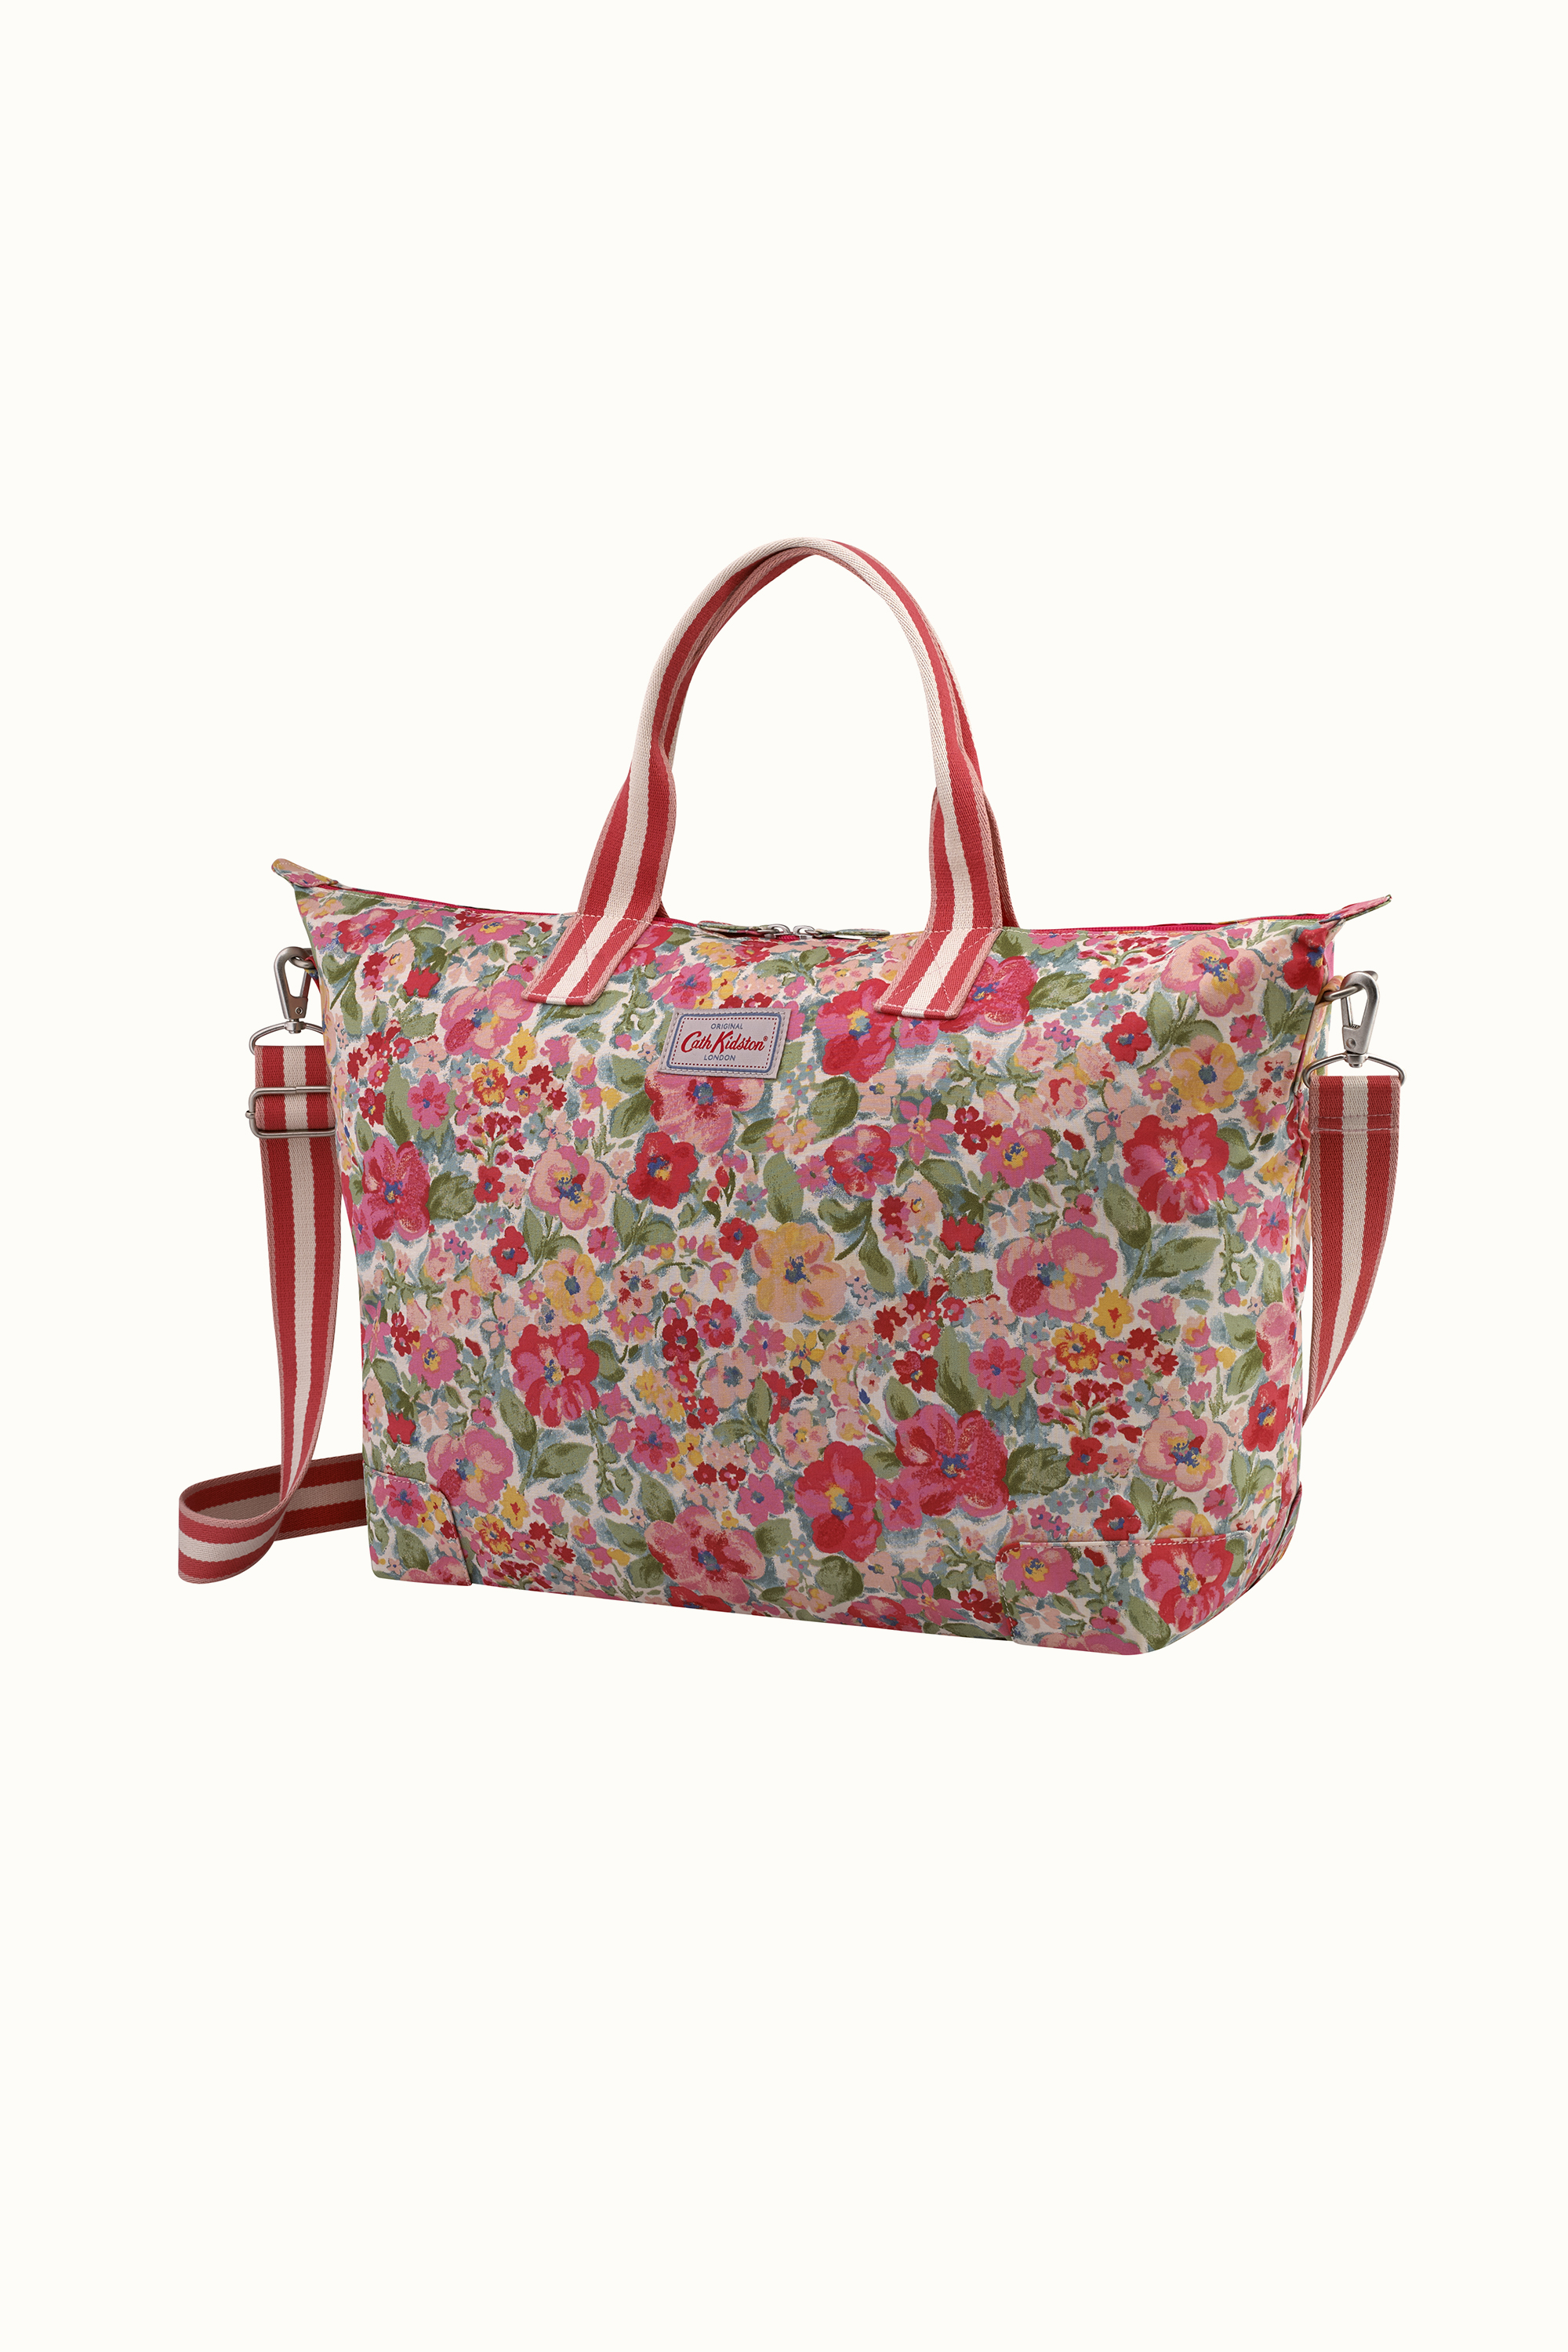 Cath Kidston Small Painted Bloom Foldaway Holiday Bag in Warm Cream